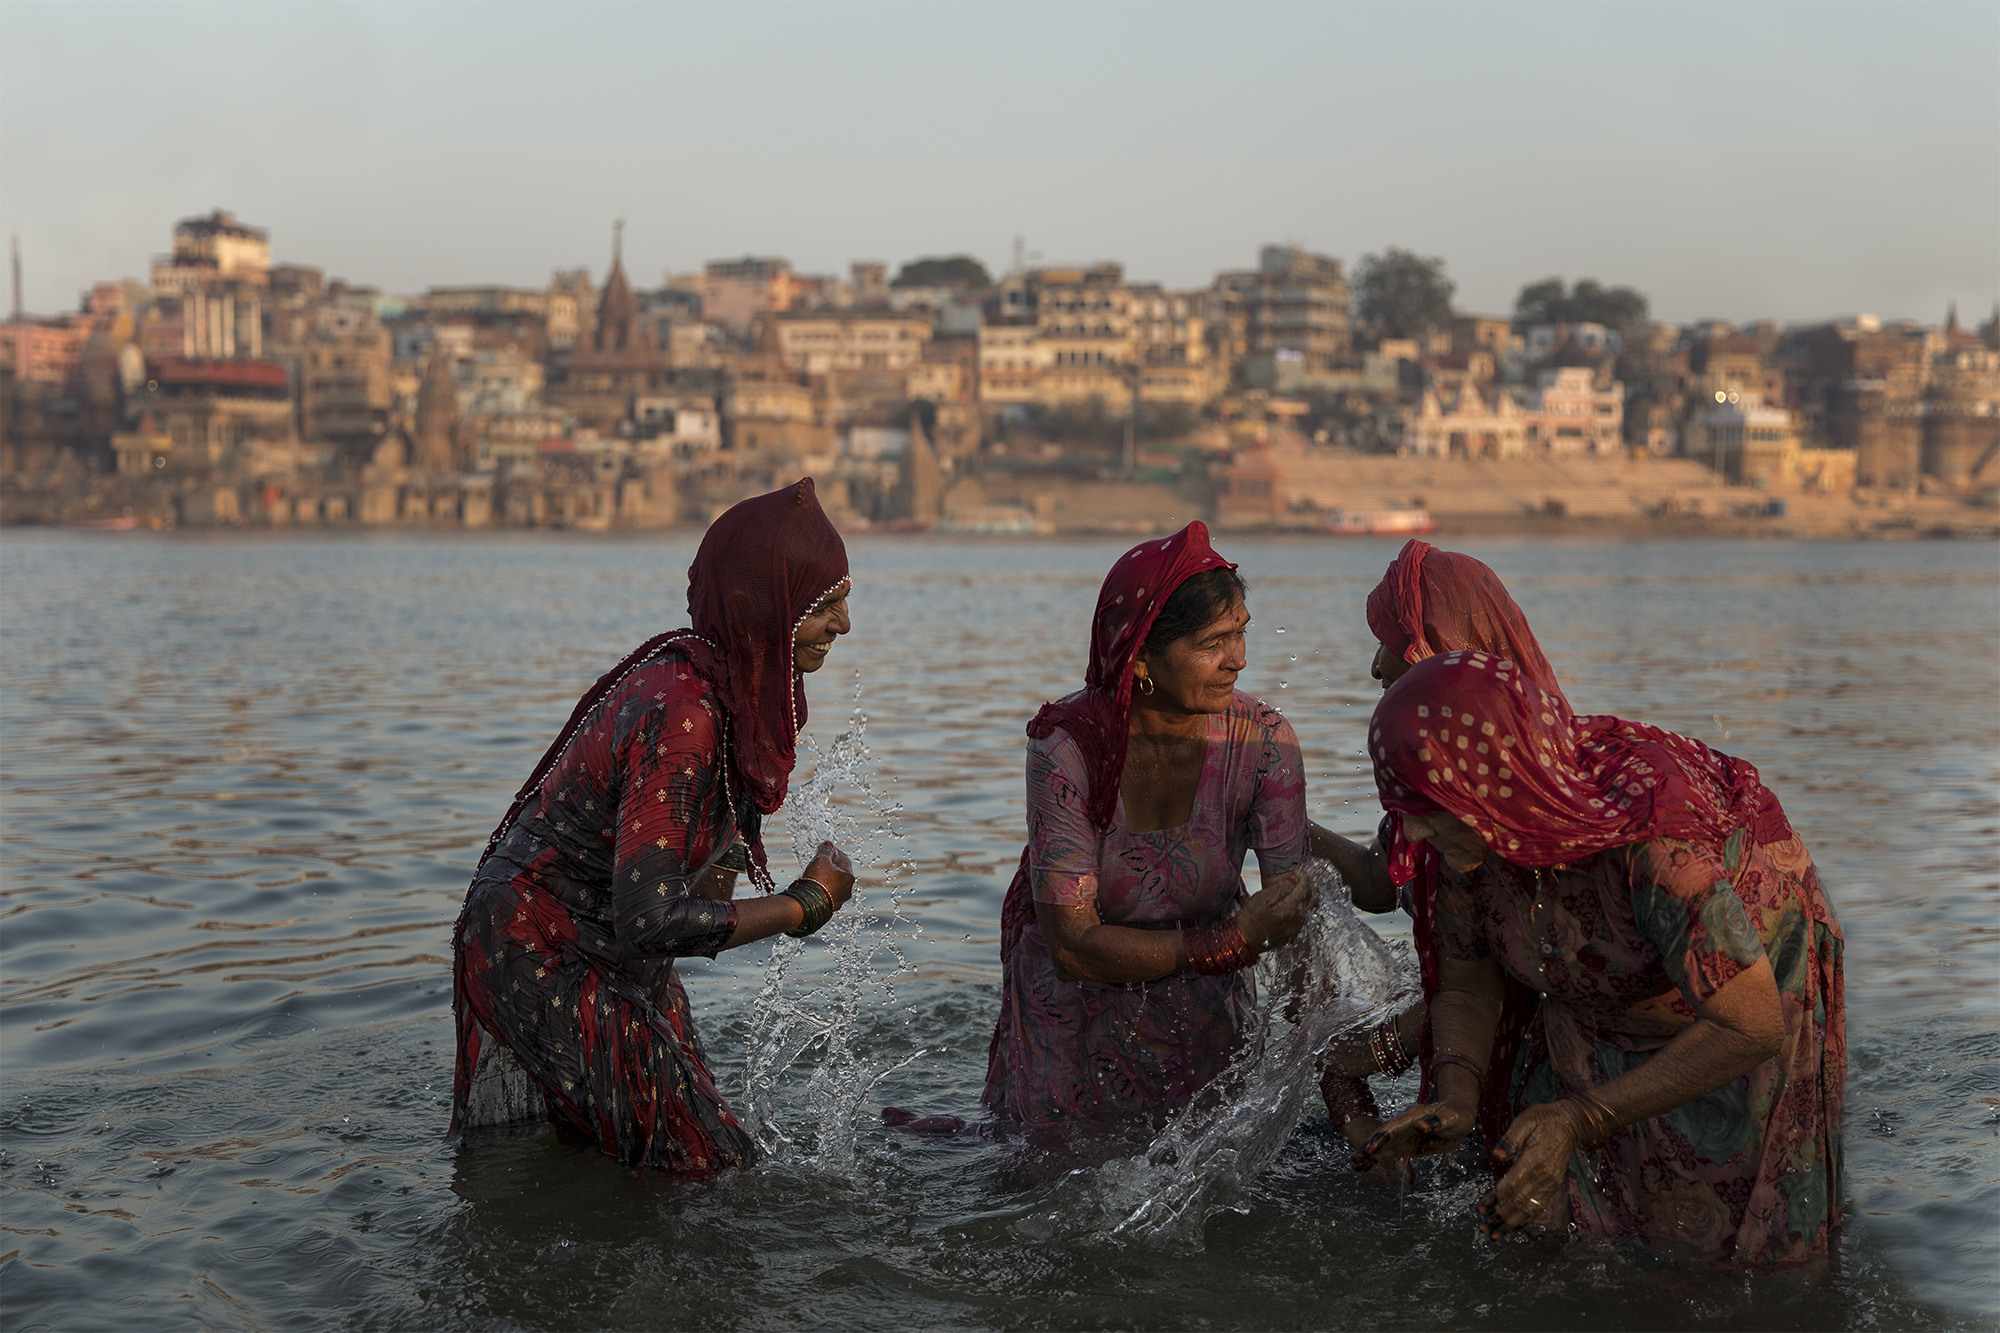 color street photography of Indian women in Varanasi by Mauro De Bettio